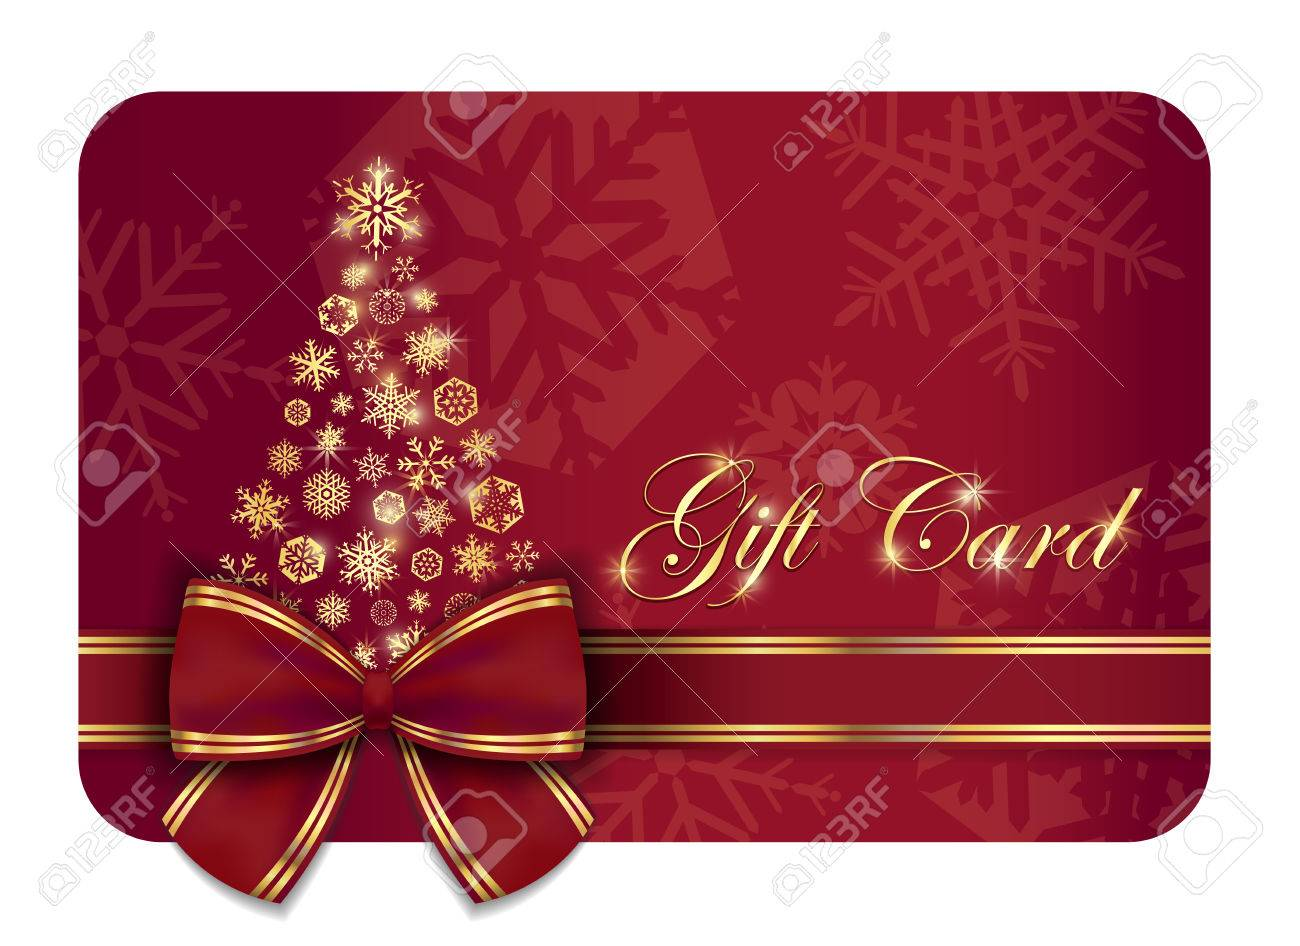 christmas gift card images